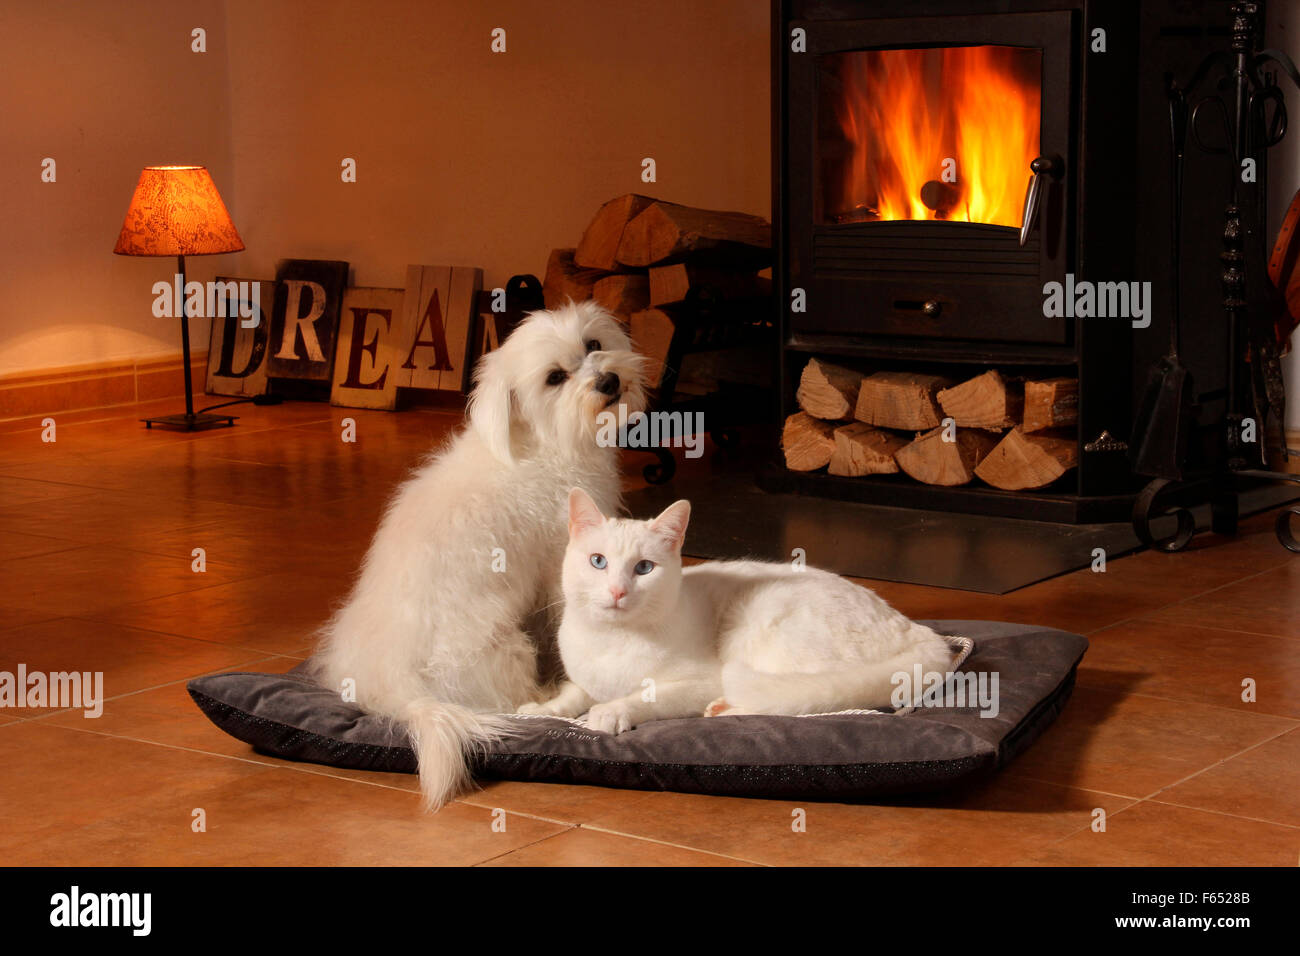 Cat In Front Fireplace Stock Photos & Cat In Front Fireplace Stock ...